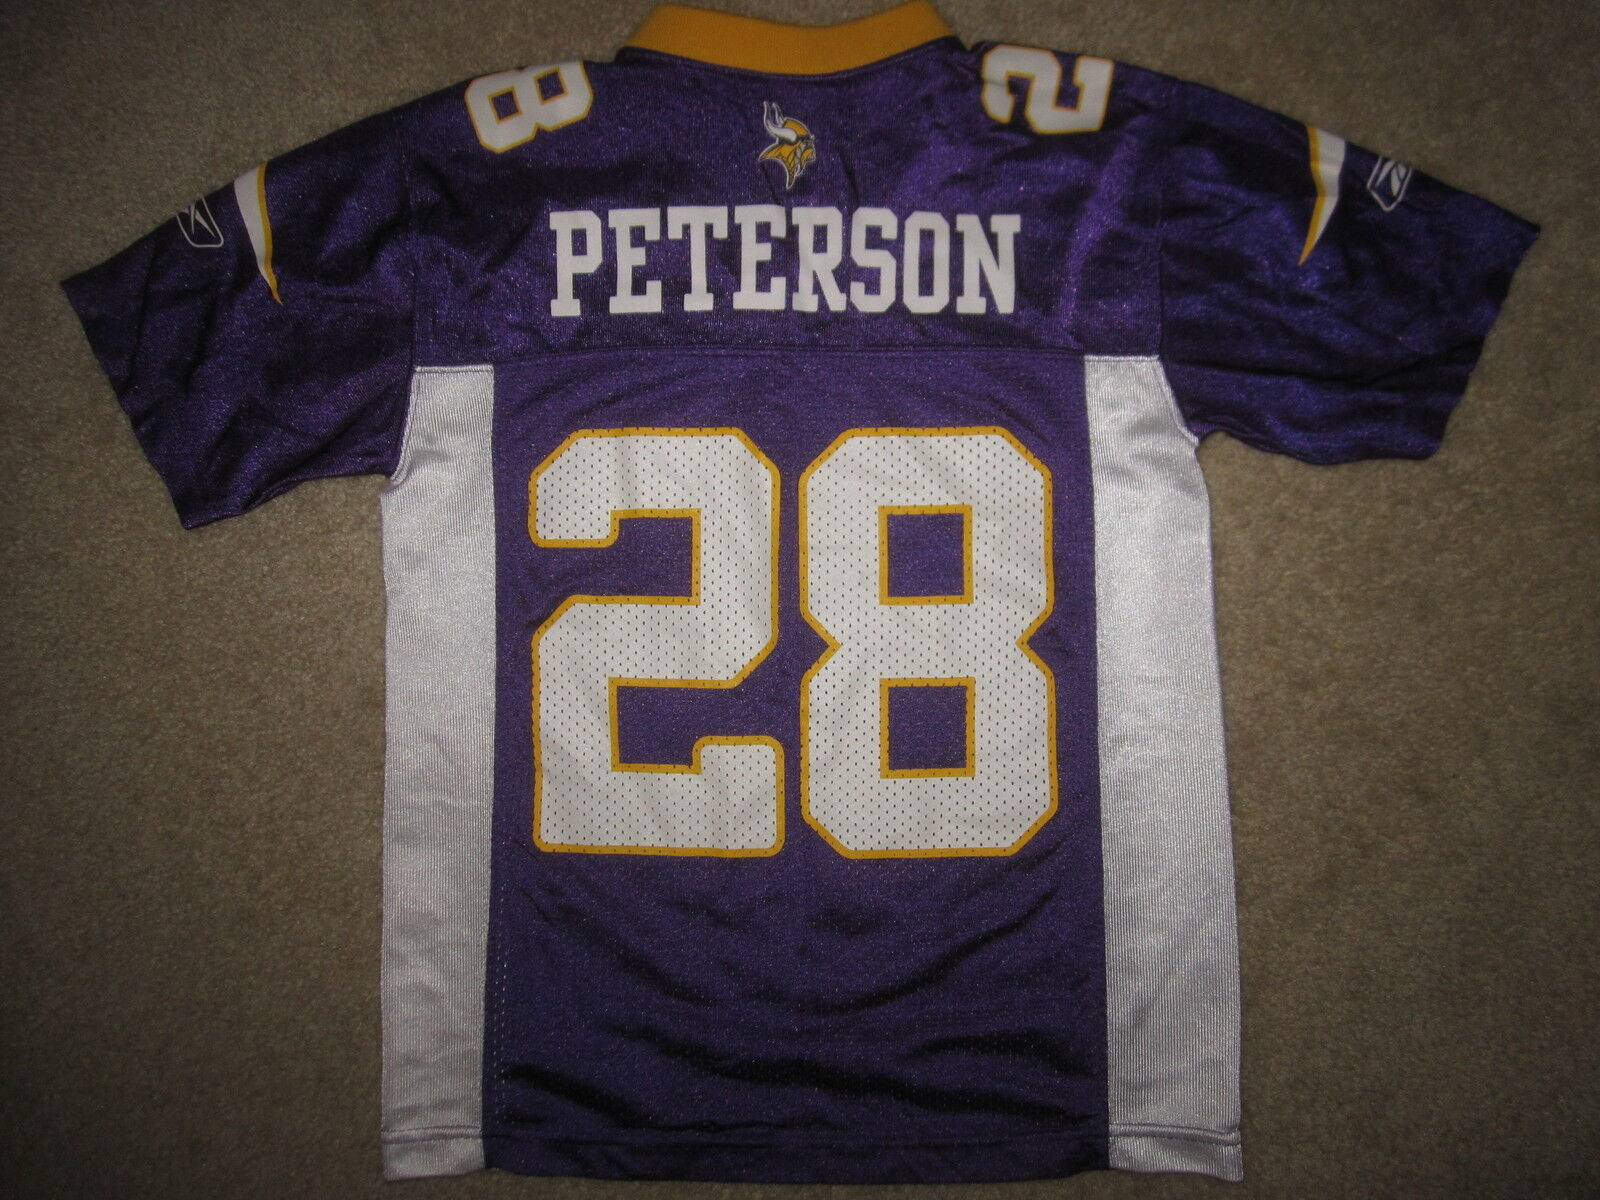 Adrian Peterson  28 Minnesota Vikings Reebok NFL Camiseta Youth Youth Youth S 8 Small  ¡no ser extrañado!